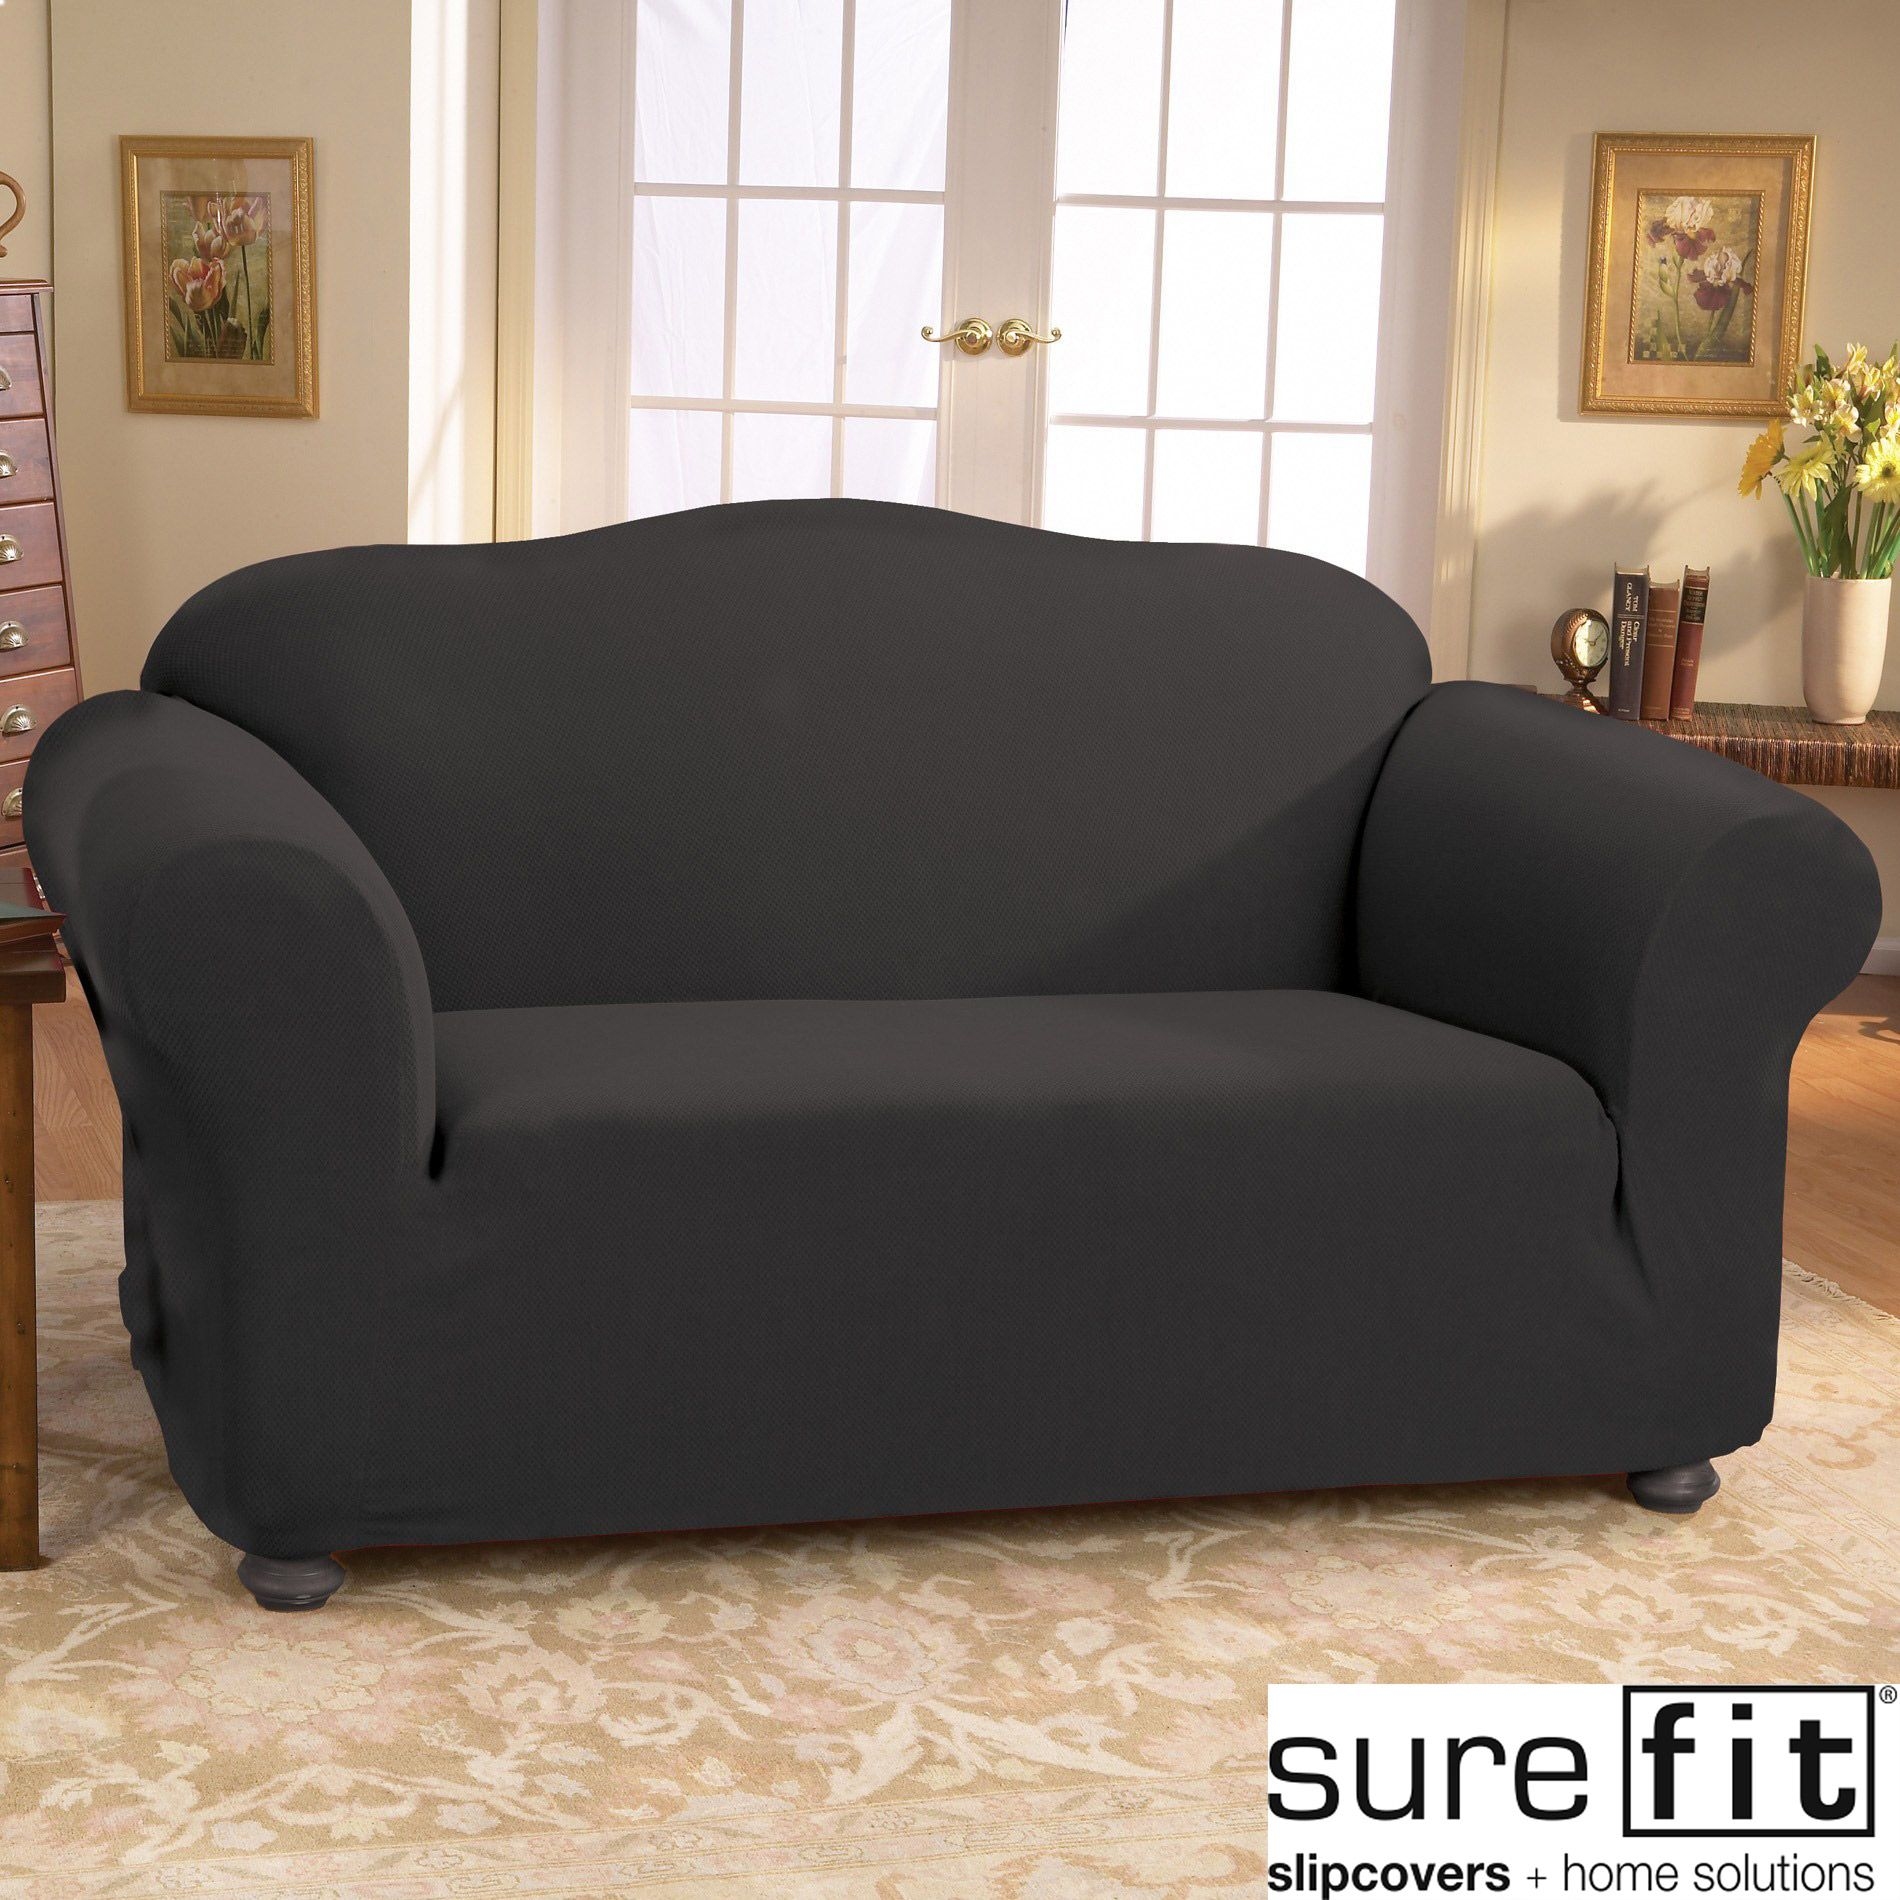 Perfect Give Your Sofa A New Look While Keeping It Protected In This Sleek Elegant Sofa  Slipcover